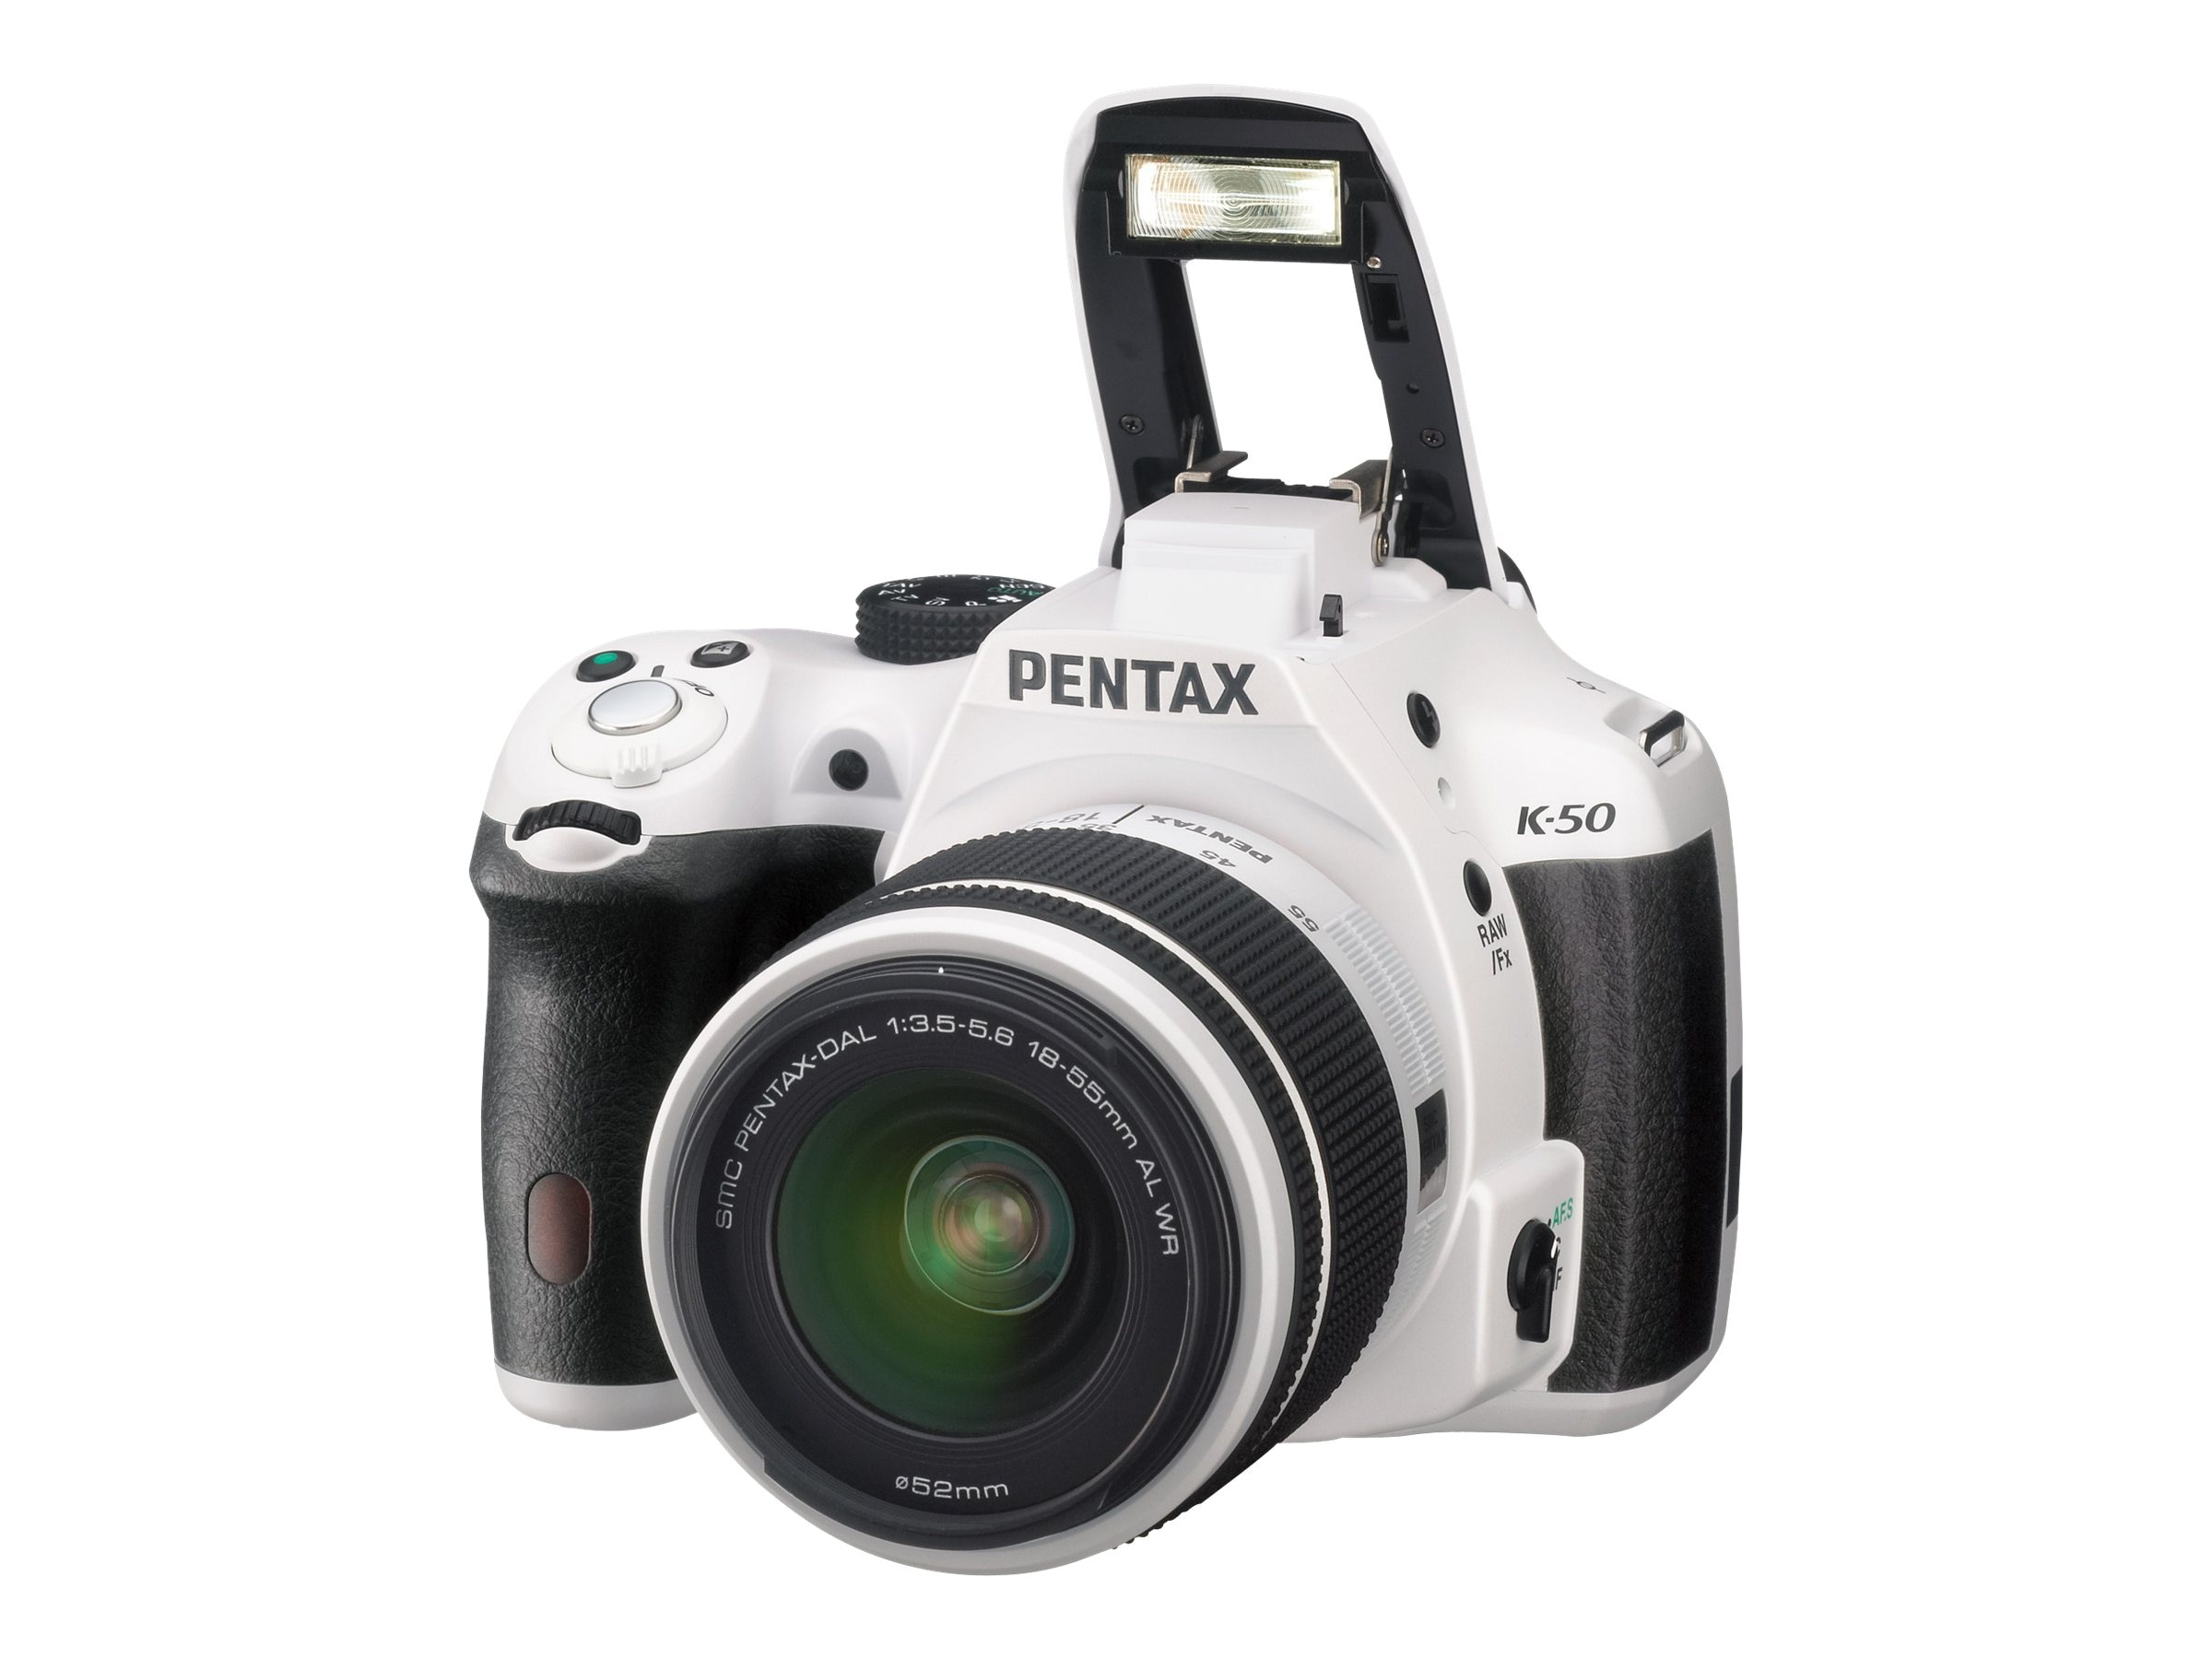 Pentax K-50 DSLR Camera with 18-55mm and 50-200mm Lenses, White, 10950, 26692228, Cameras - Digital - SLR